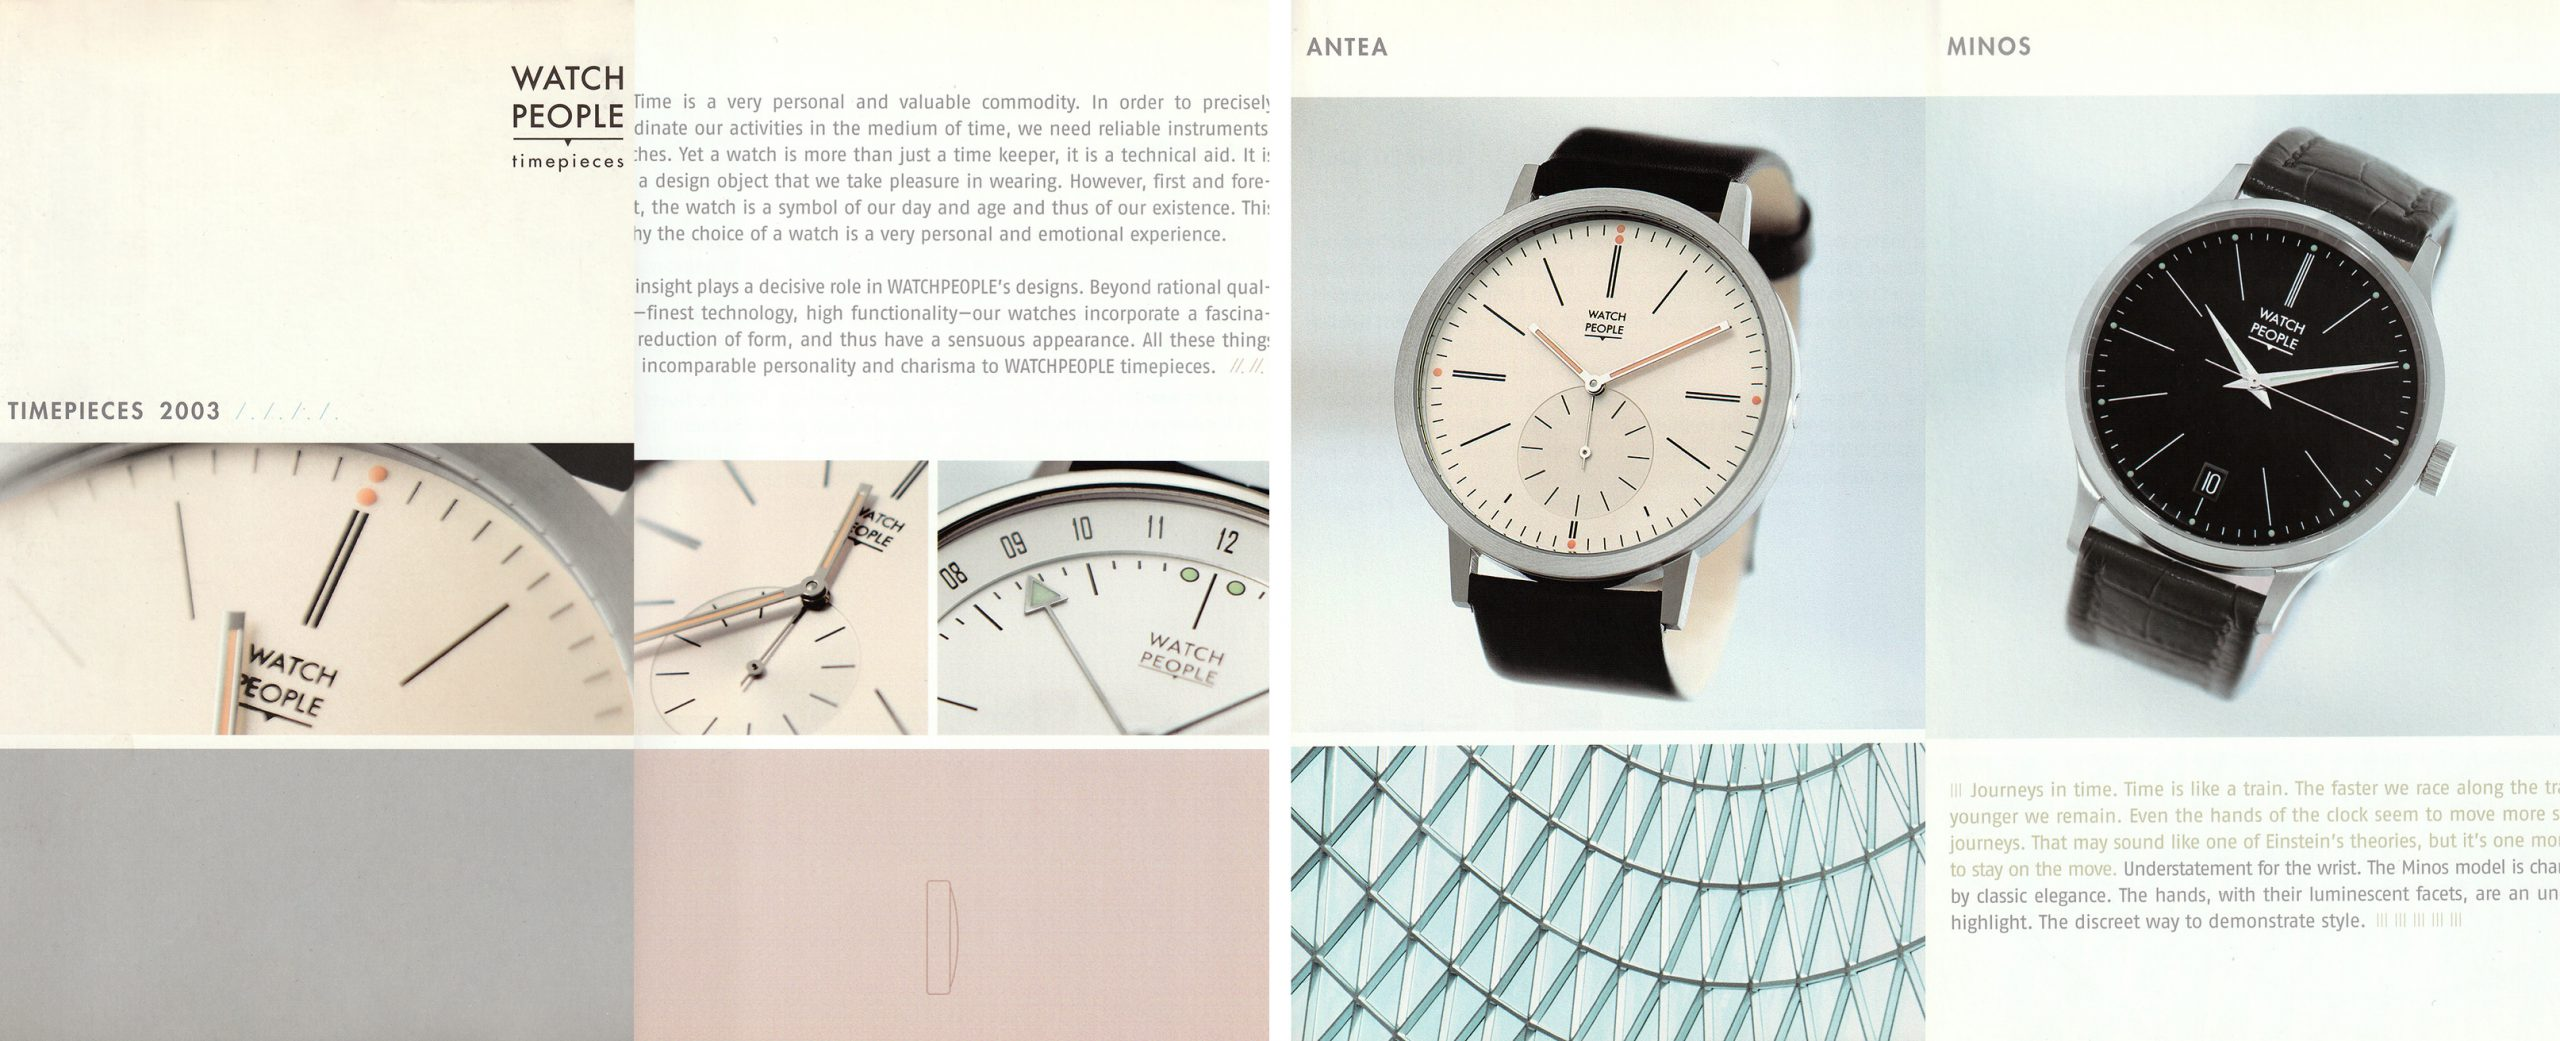 Watchpeople_01b